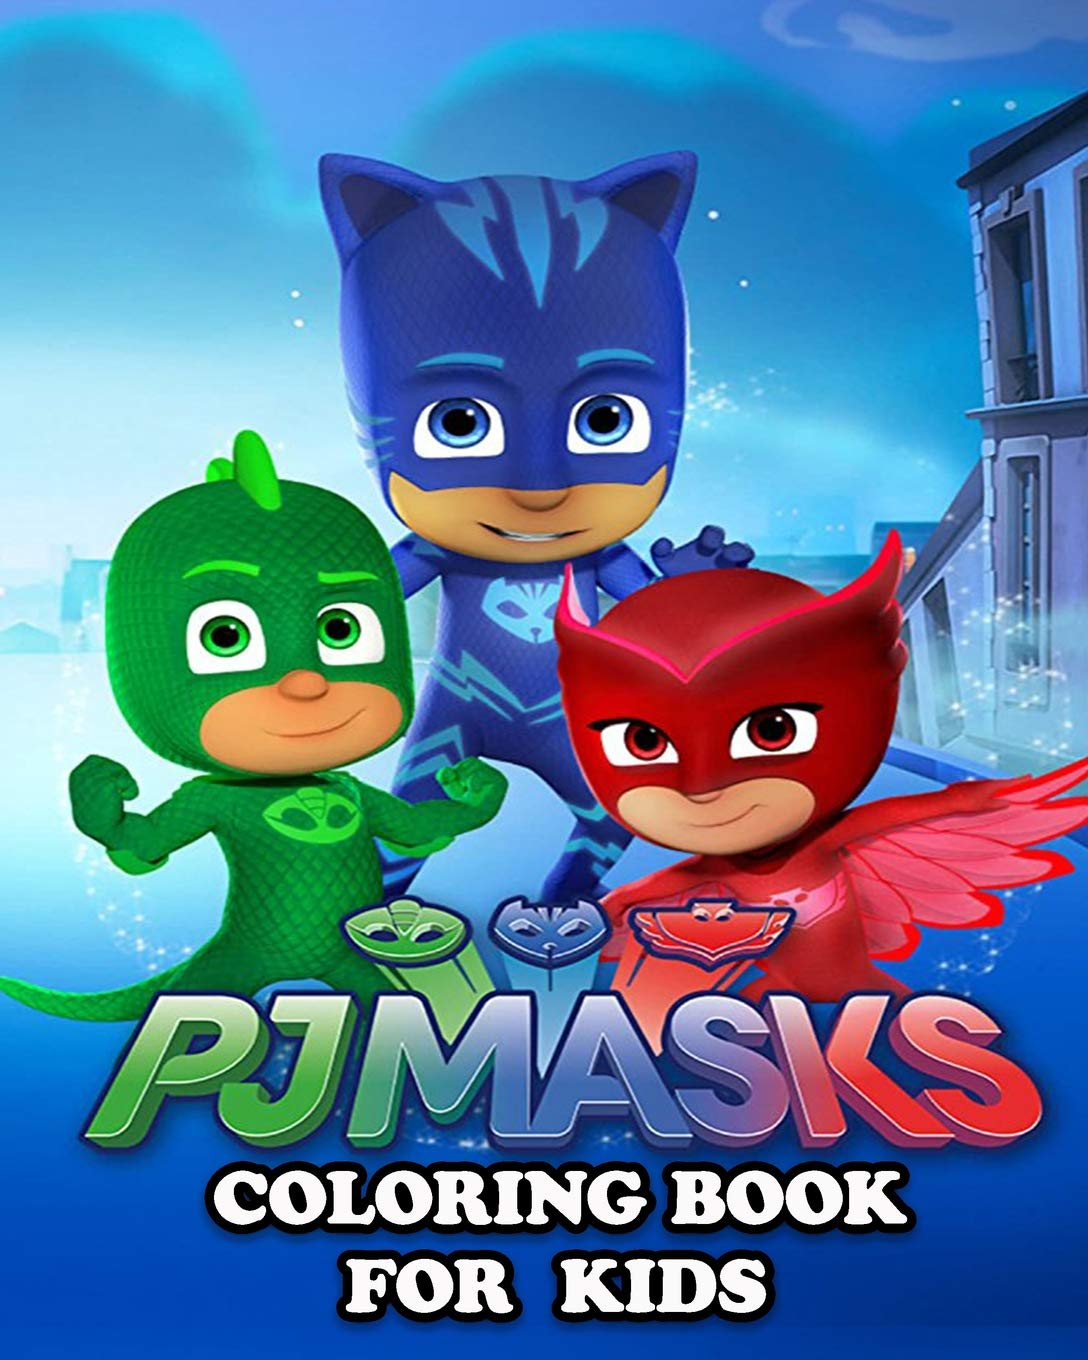 - PJ MASKS Coloring Book For Kids: Great Activity Book To Color All